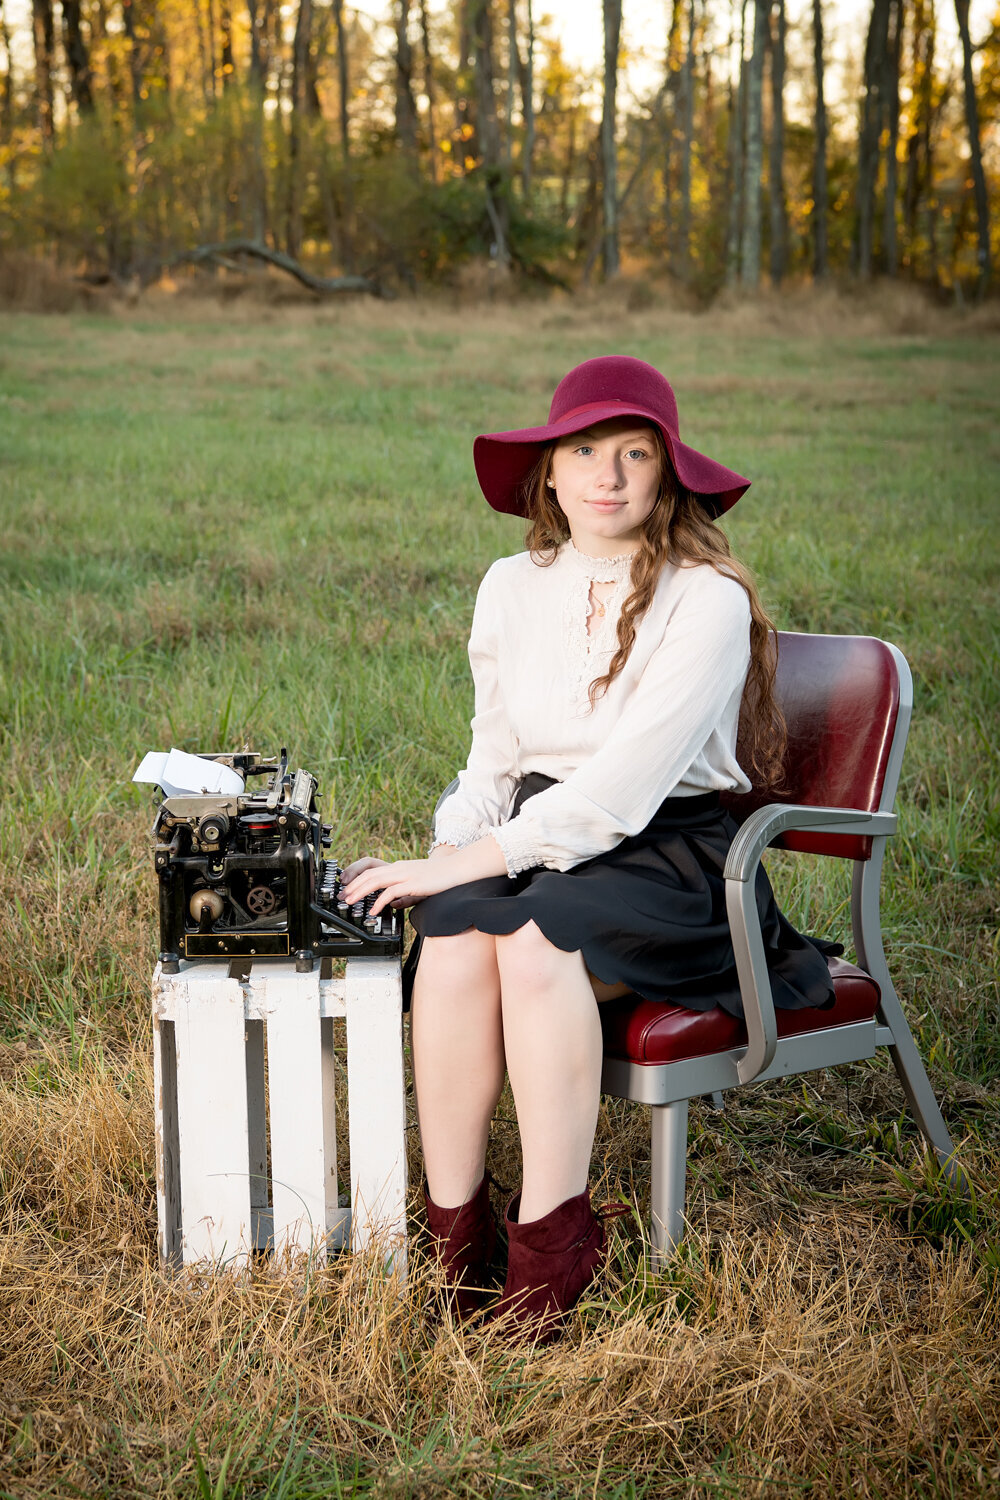 senior girl, field, vintage typewriter red hat old office chair